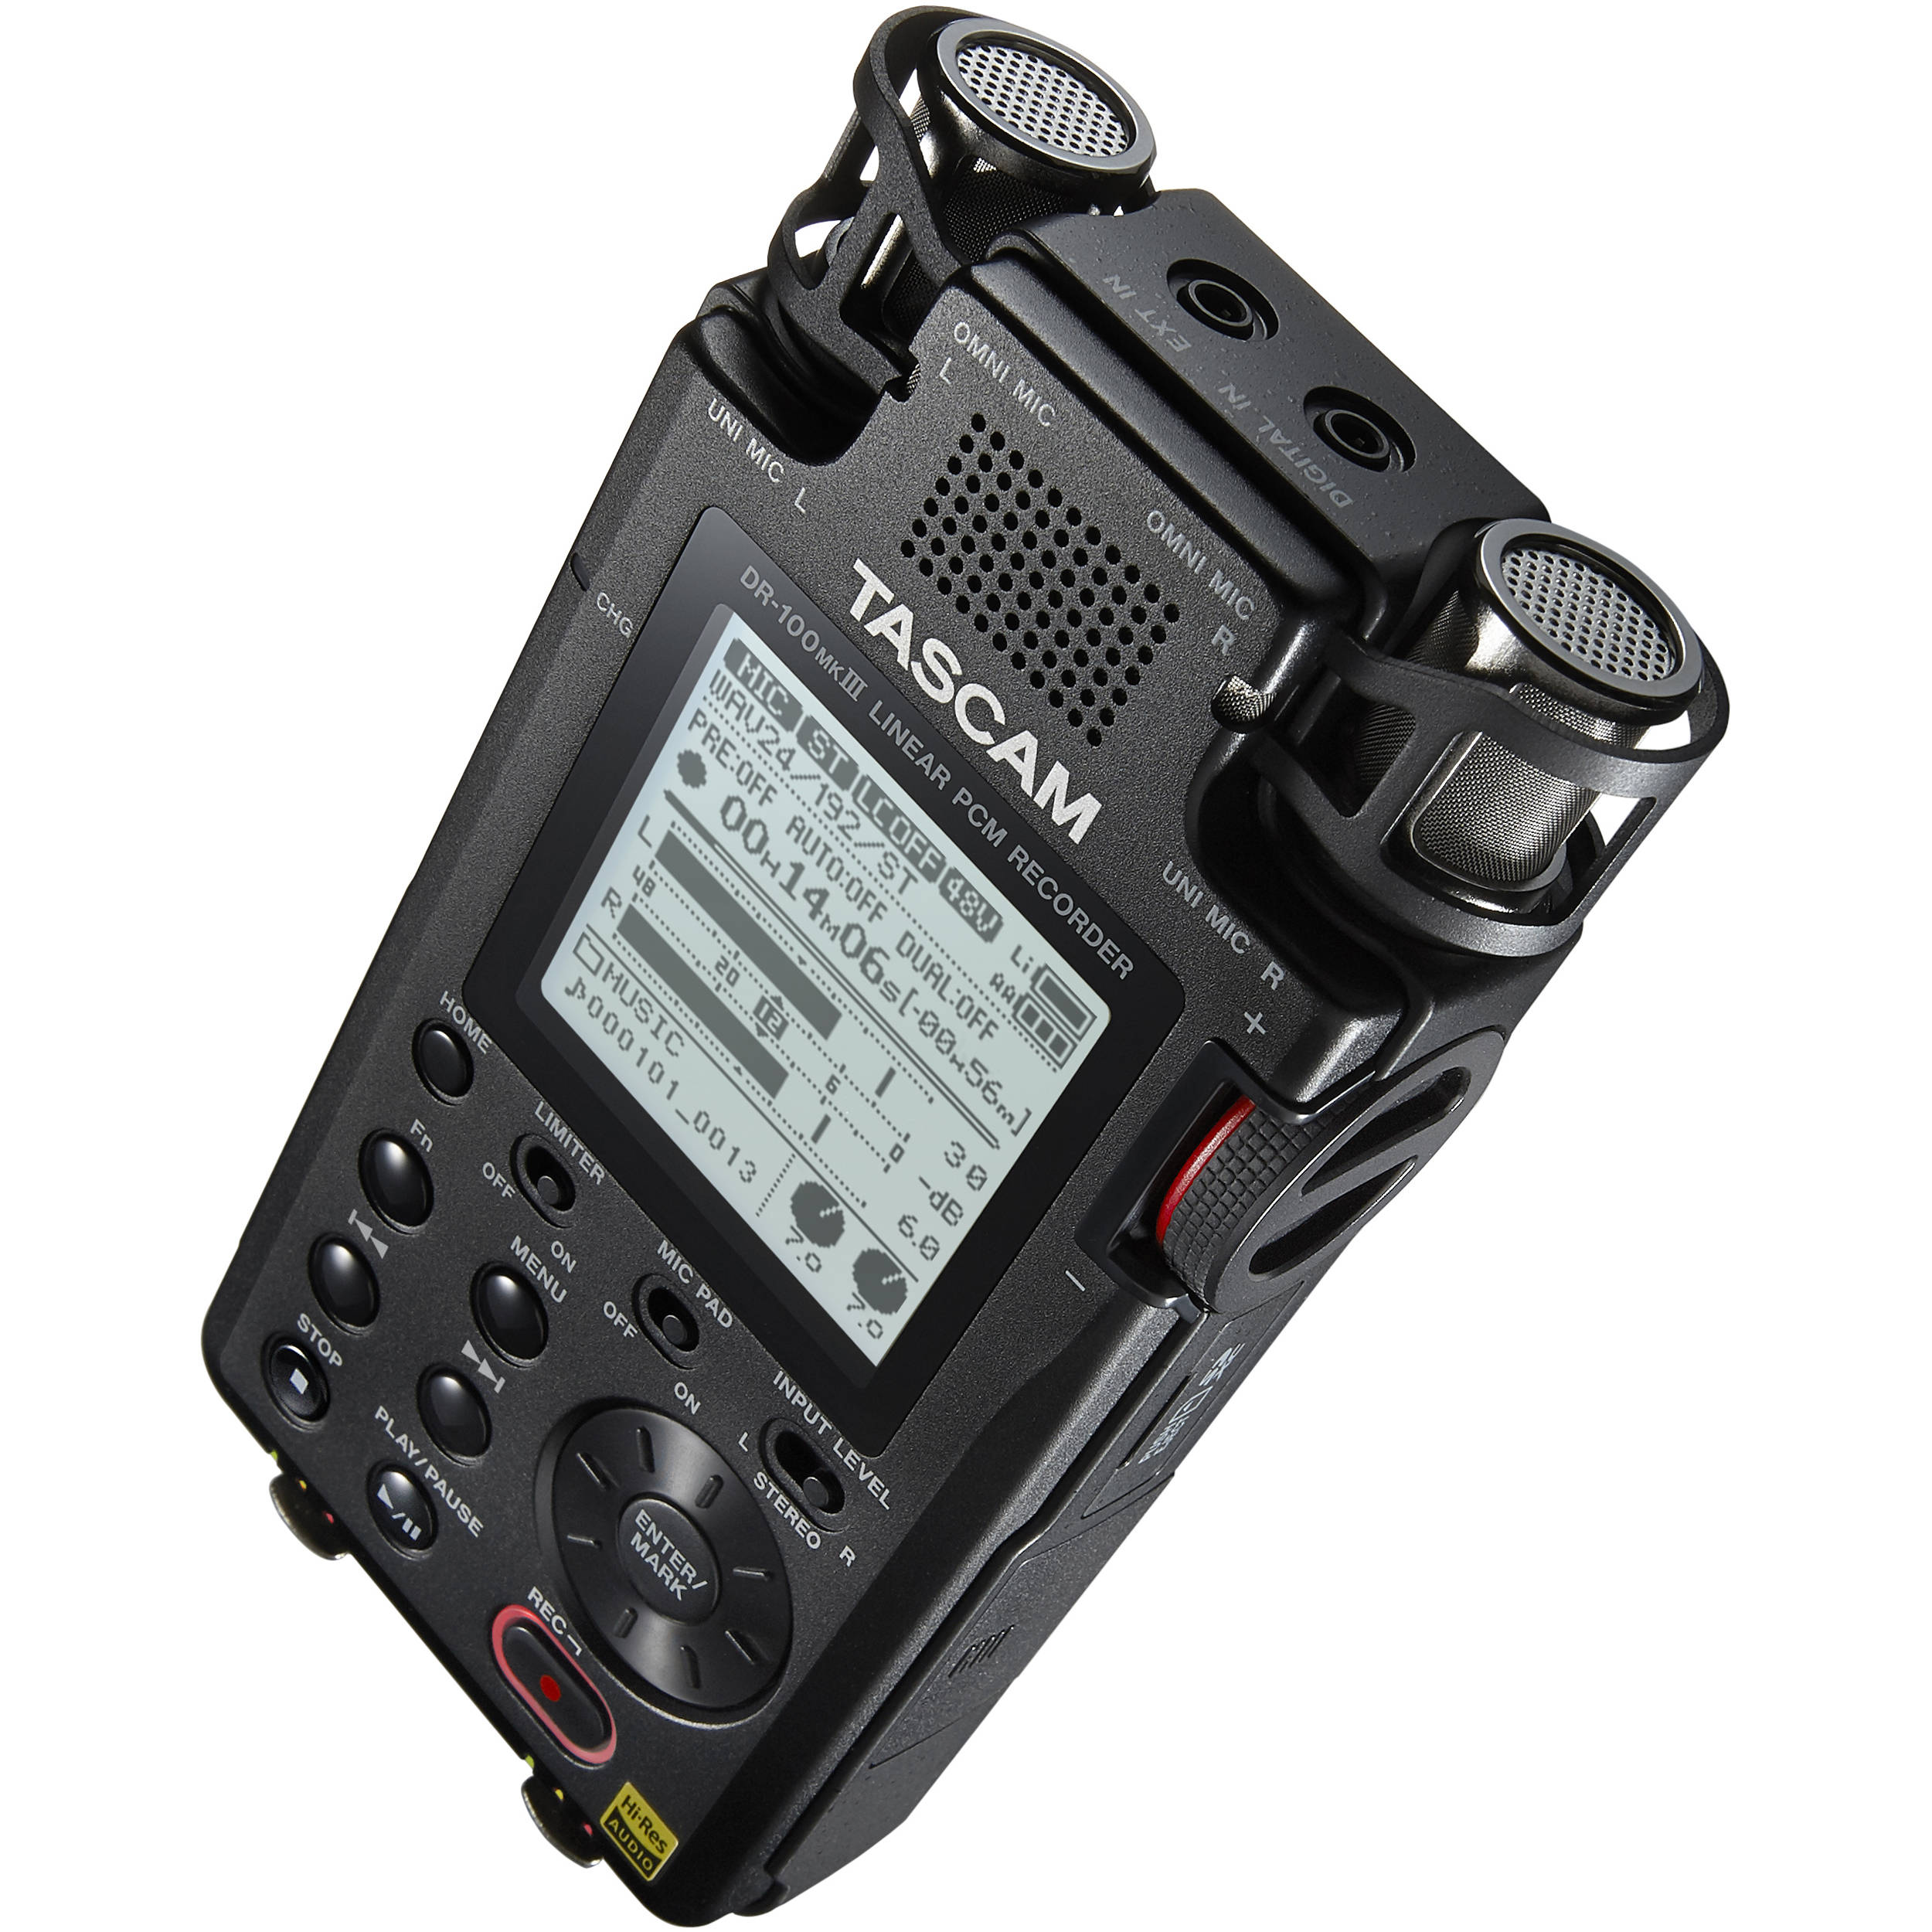 tascam dr 100mkiii linear pcm recorder dr 100mkiii b h photo rh bhphotovideo com